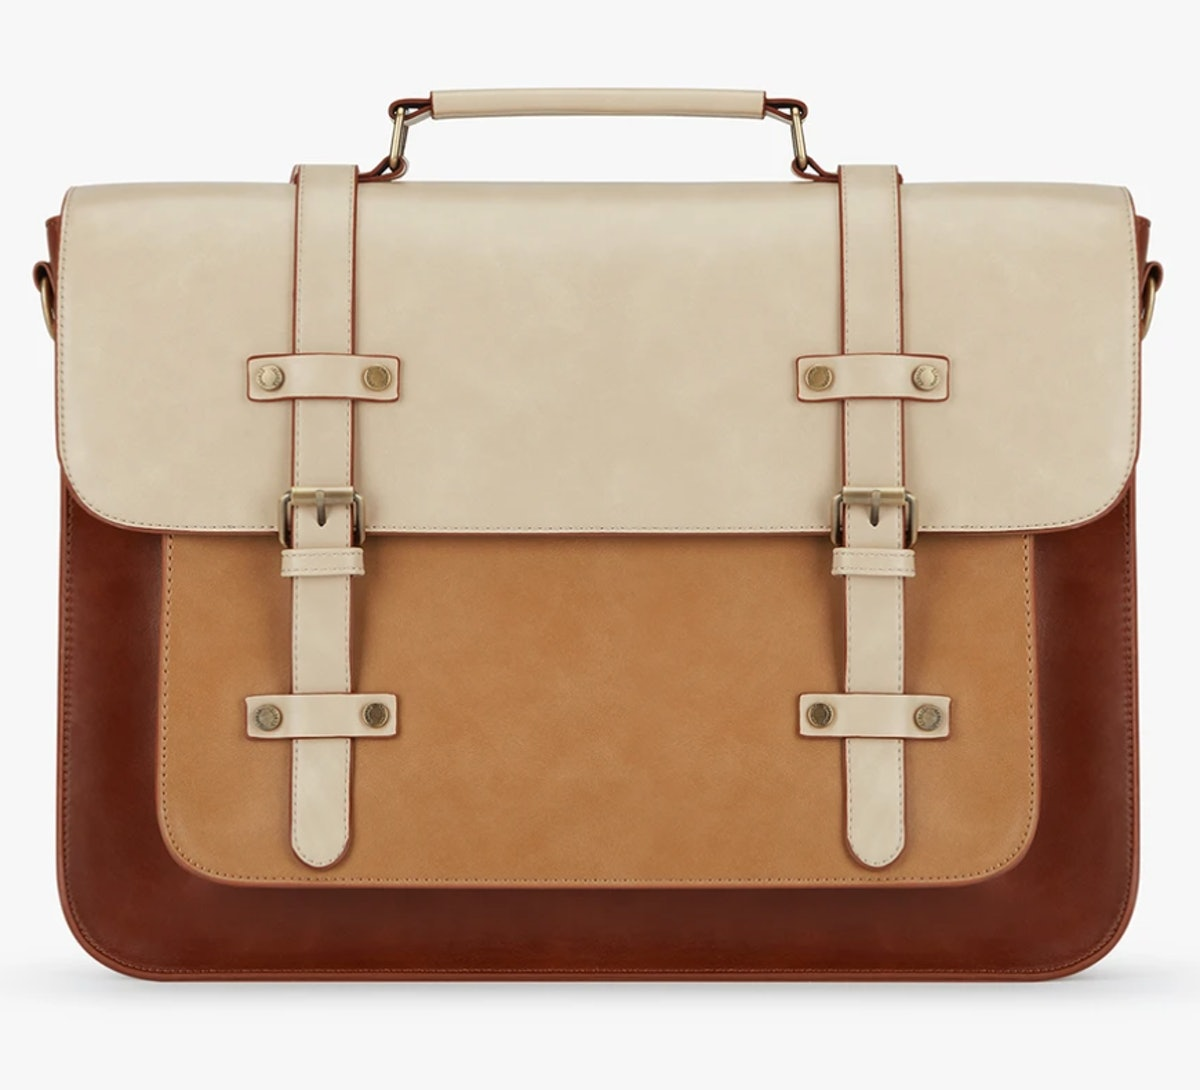 ECOSUSI's Sombre Vintage Bag that can hold a laptop.